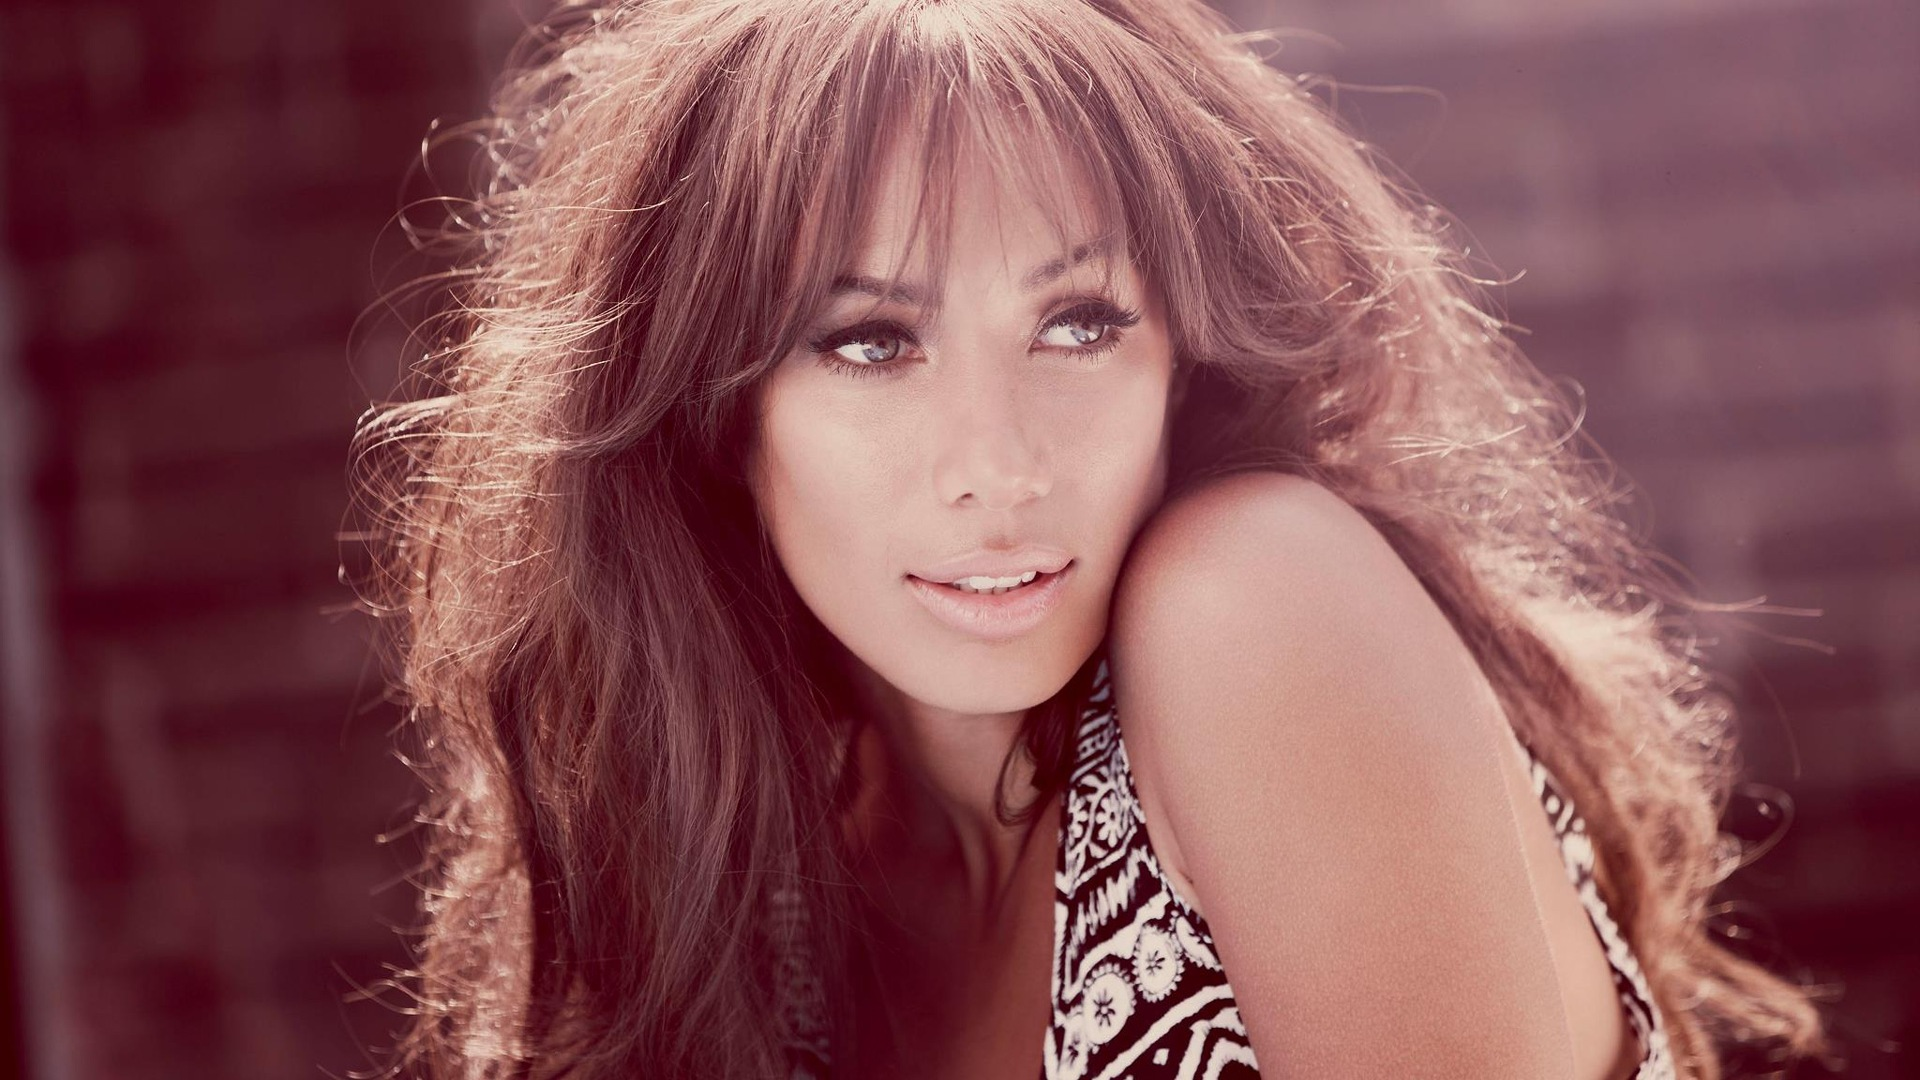 awesome leona lewis pics for smart phone